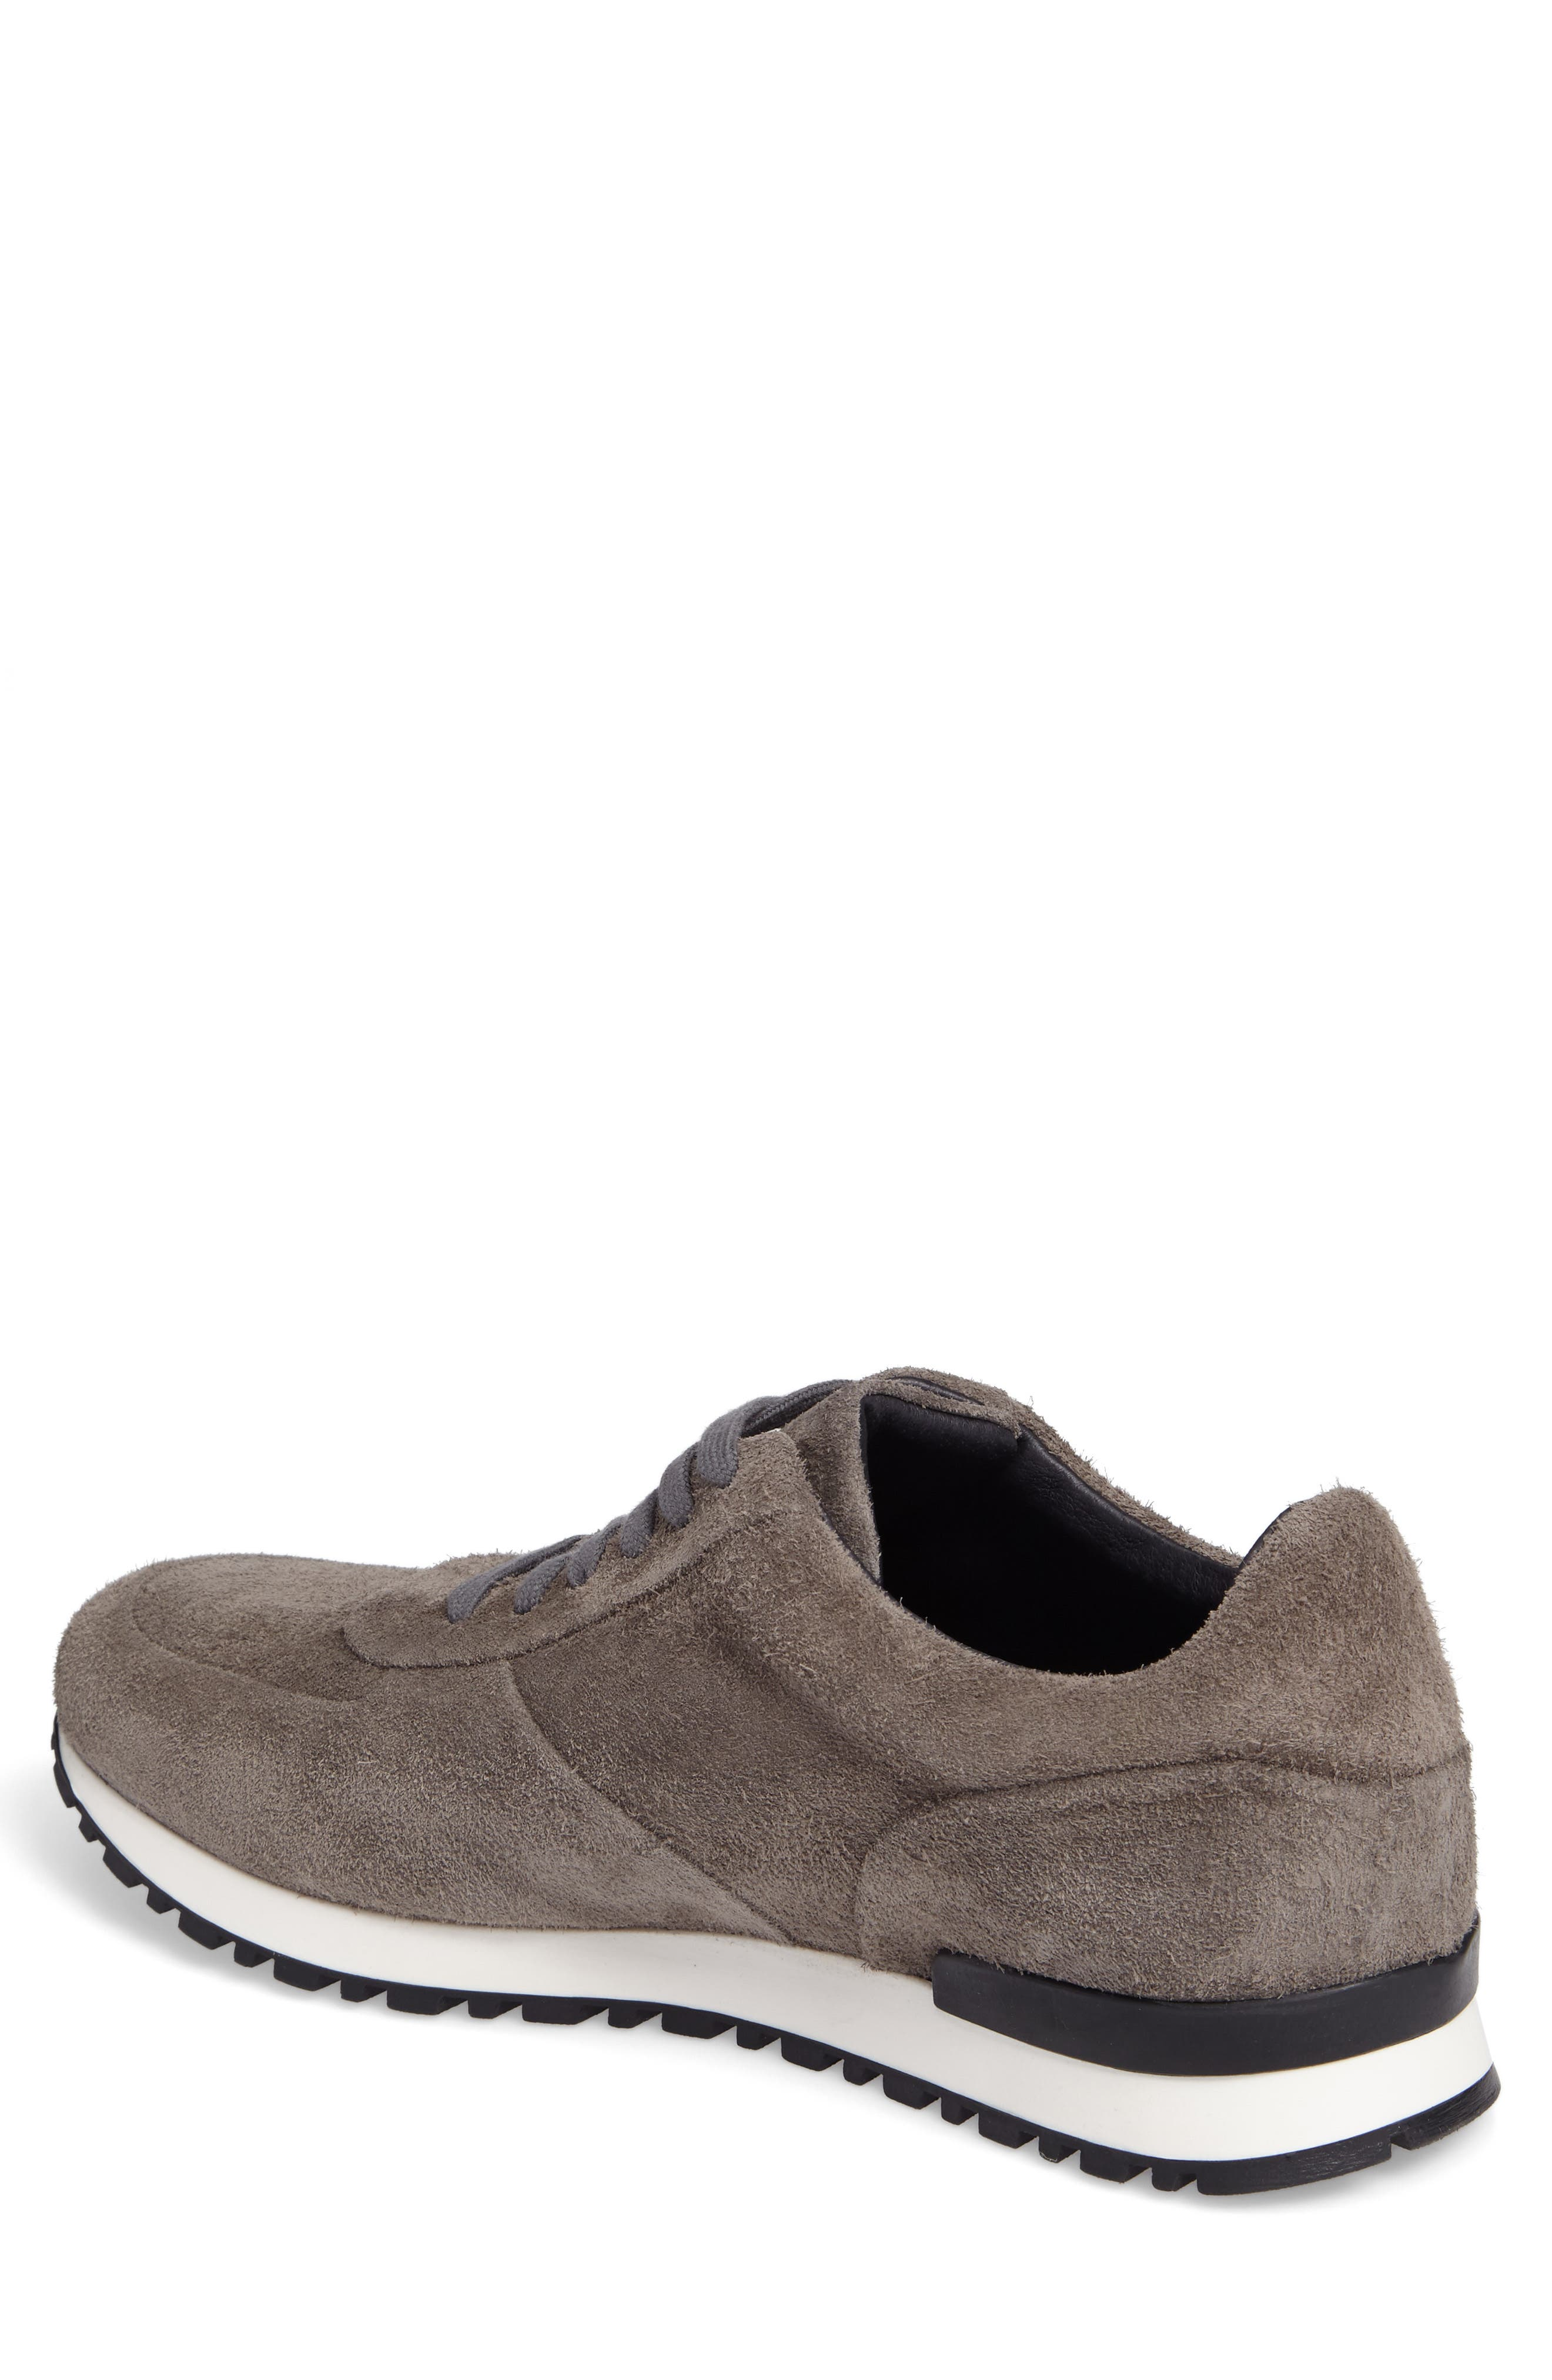 Hairy Sneaker,                             Alternate thumbnail 2, color,                             Grey Suede